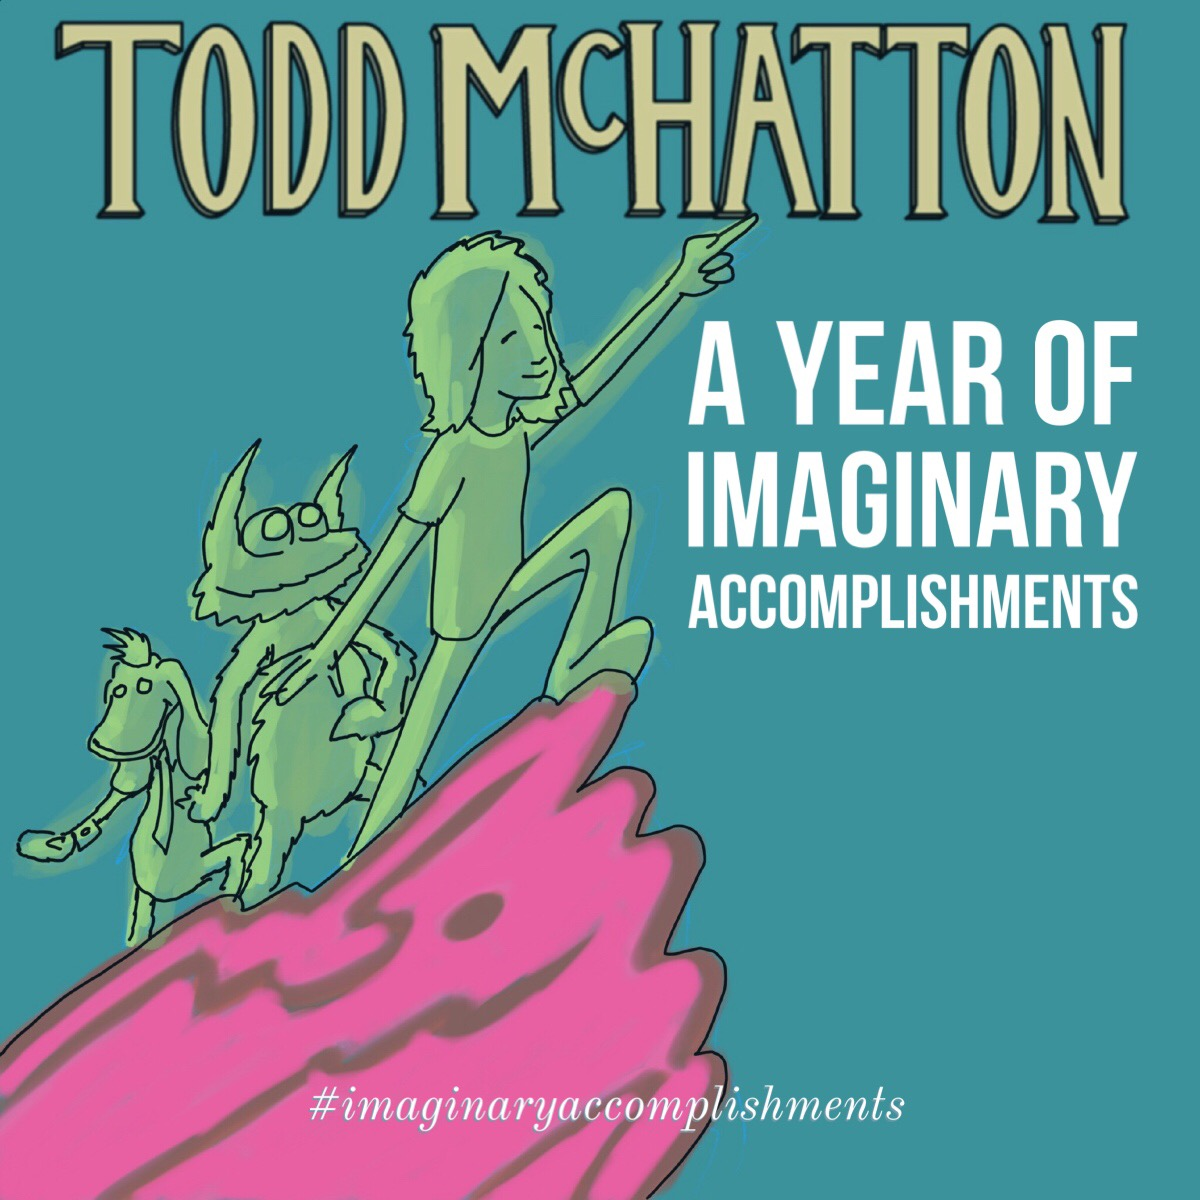 Todd McHatton / Imaginary Accomplishments